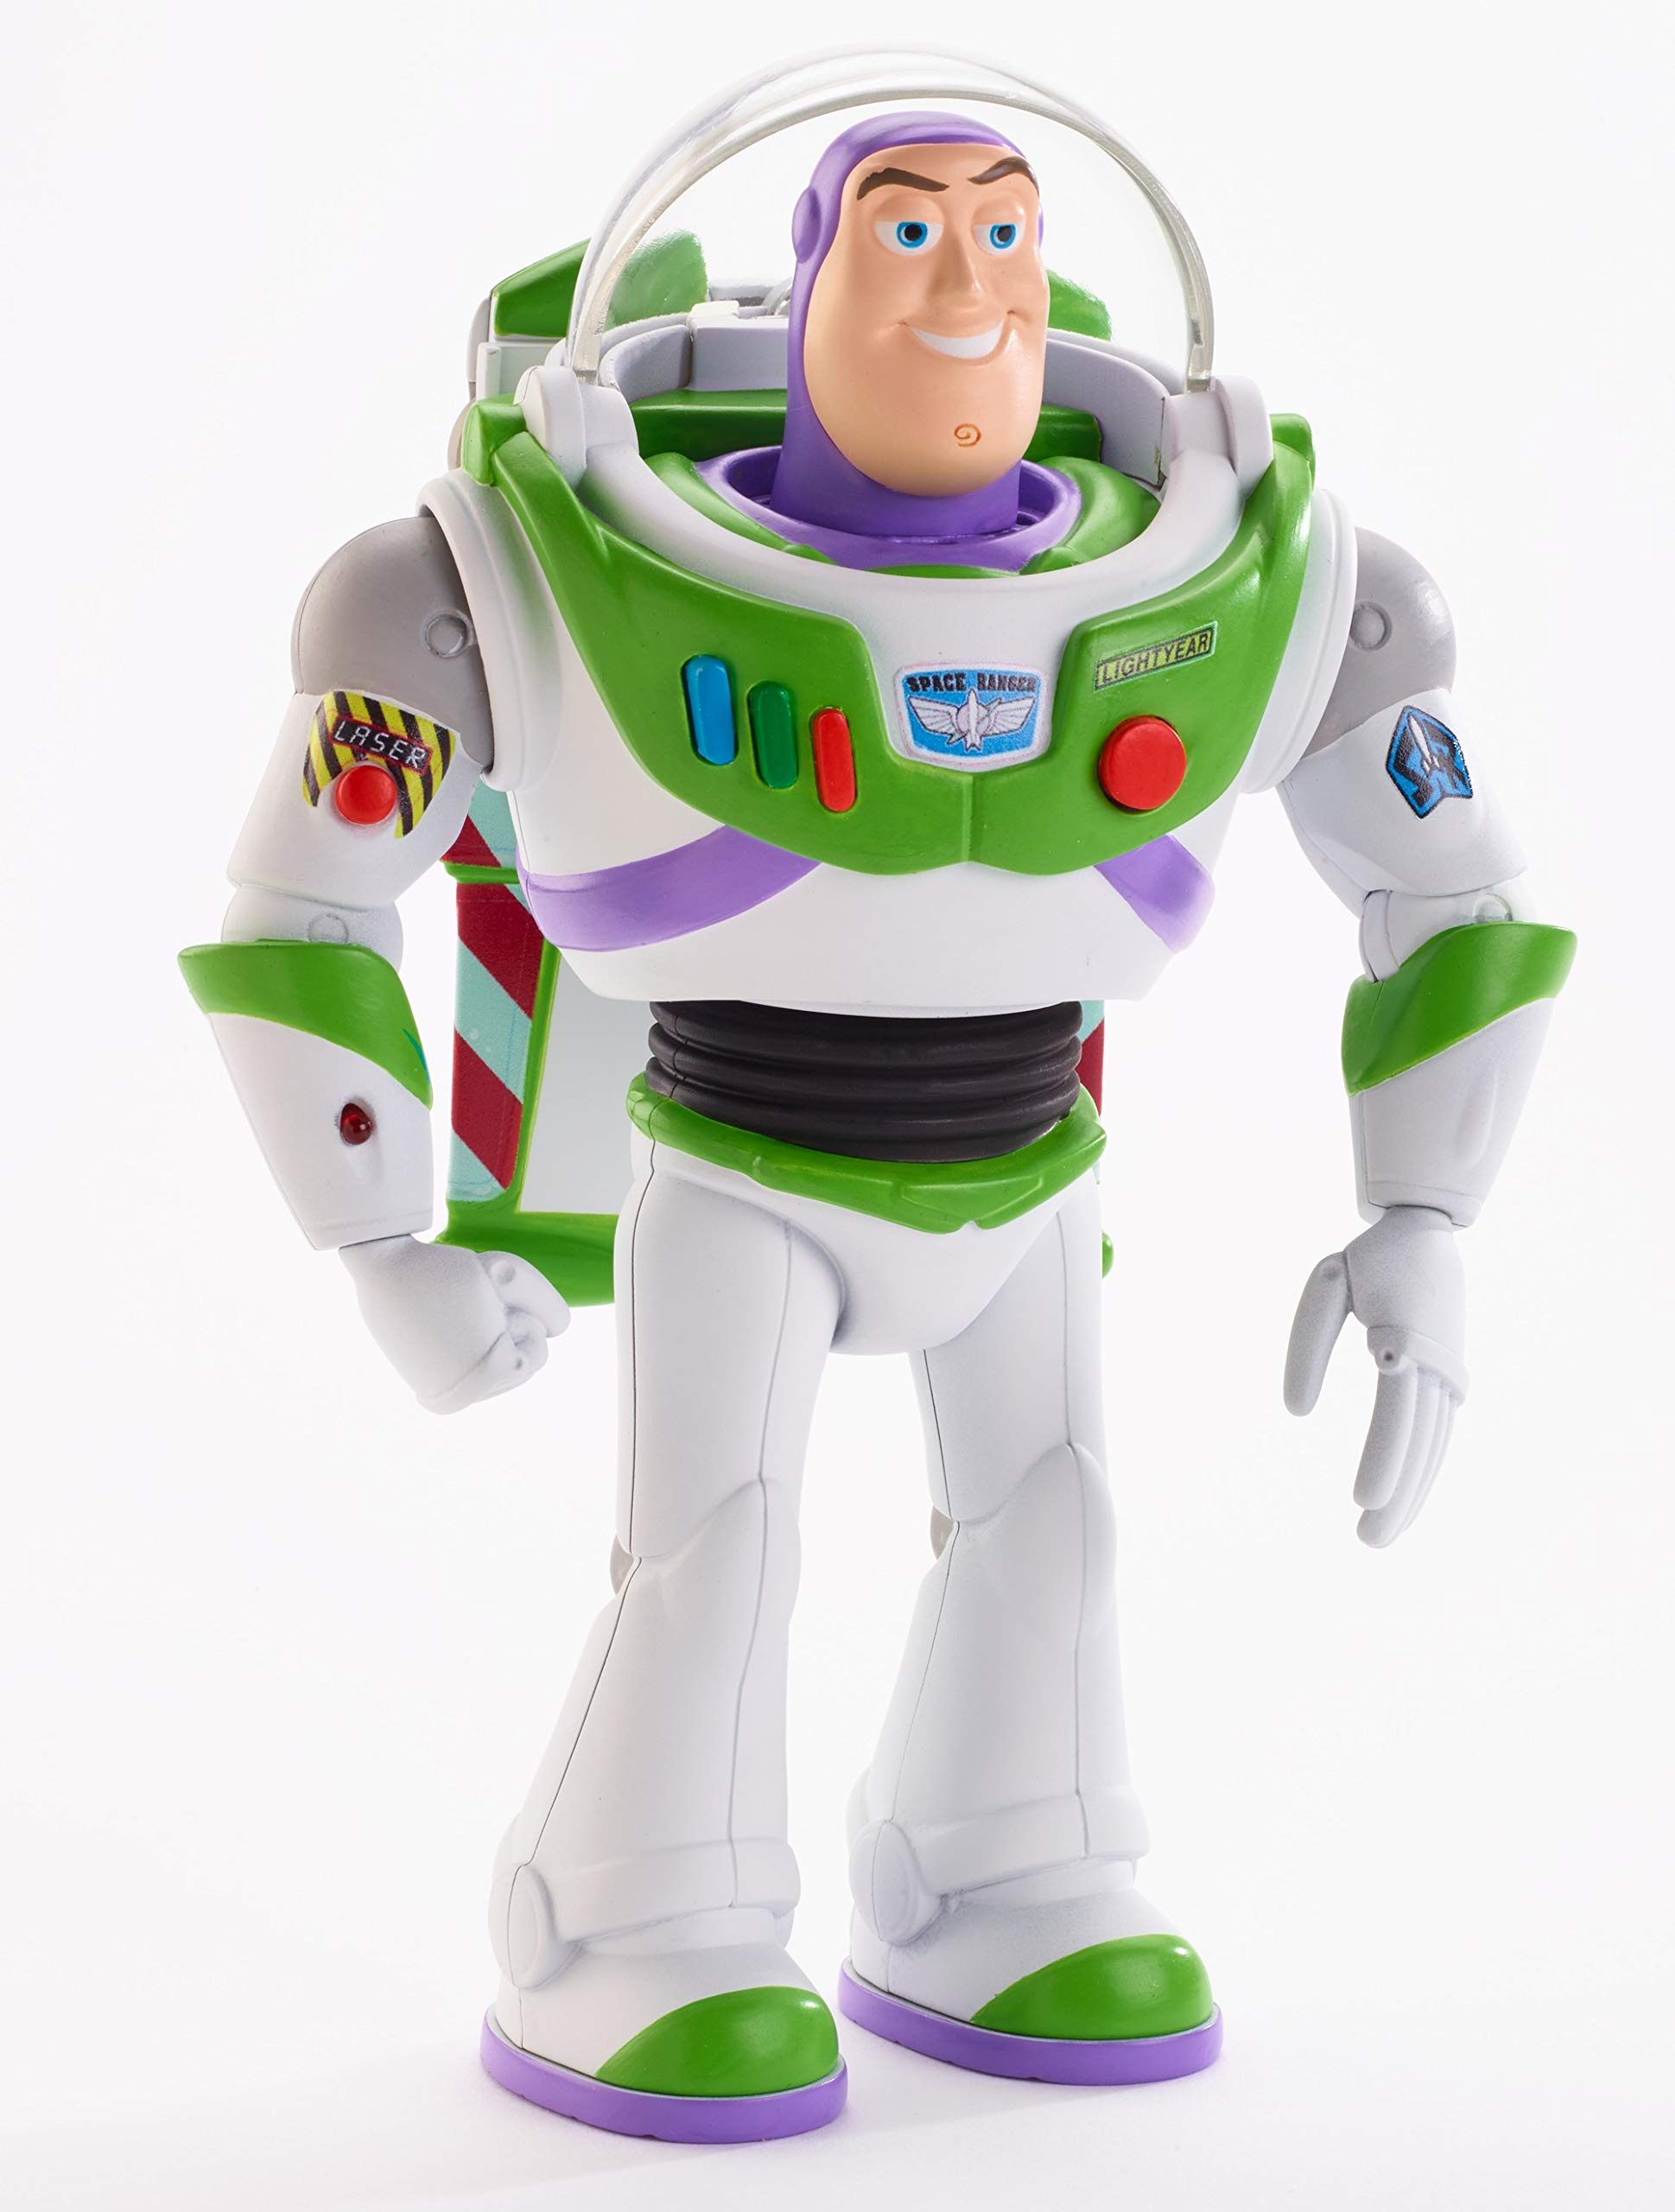 Disney Pixar Toy Story Ultimate Walking Buzz Lightyear, 7'' by Toy Story (Image #10)